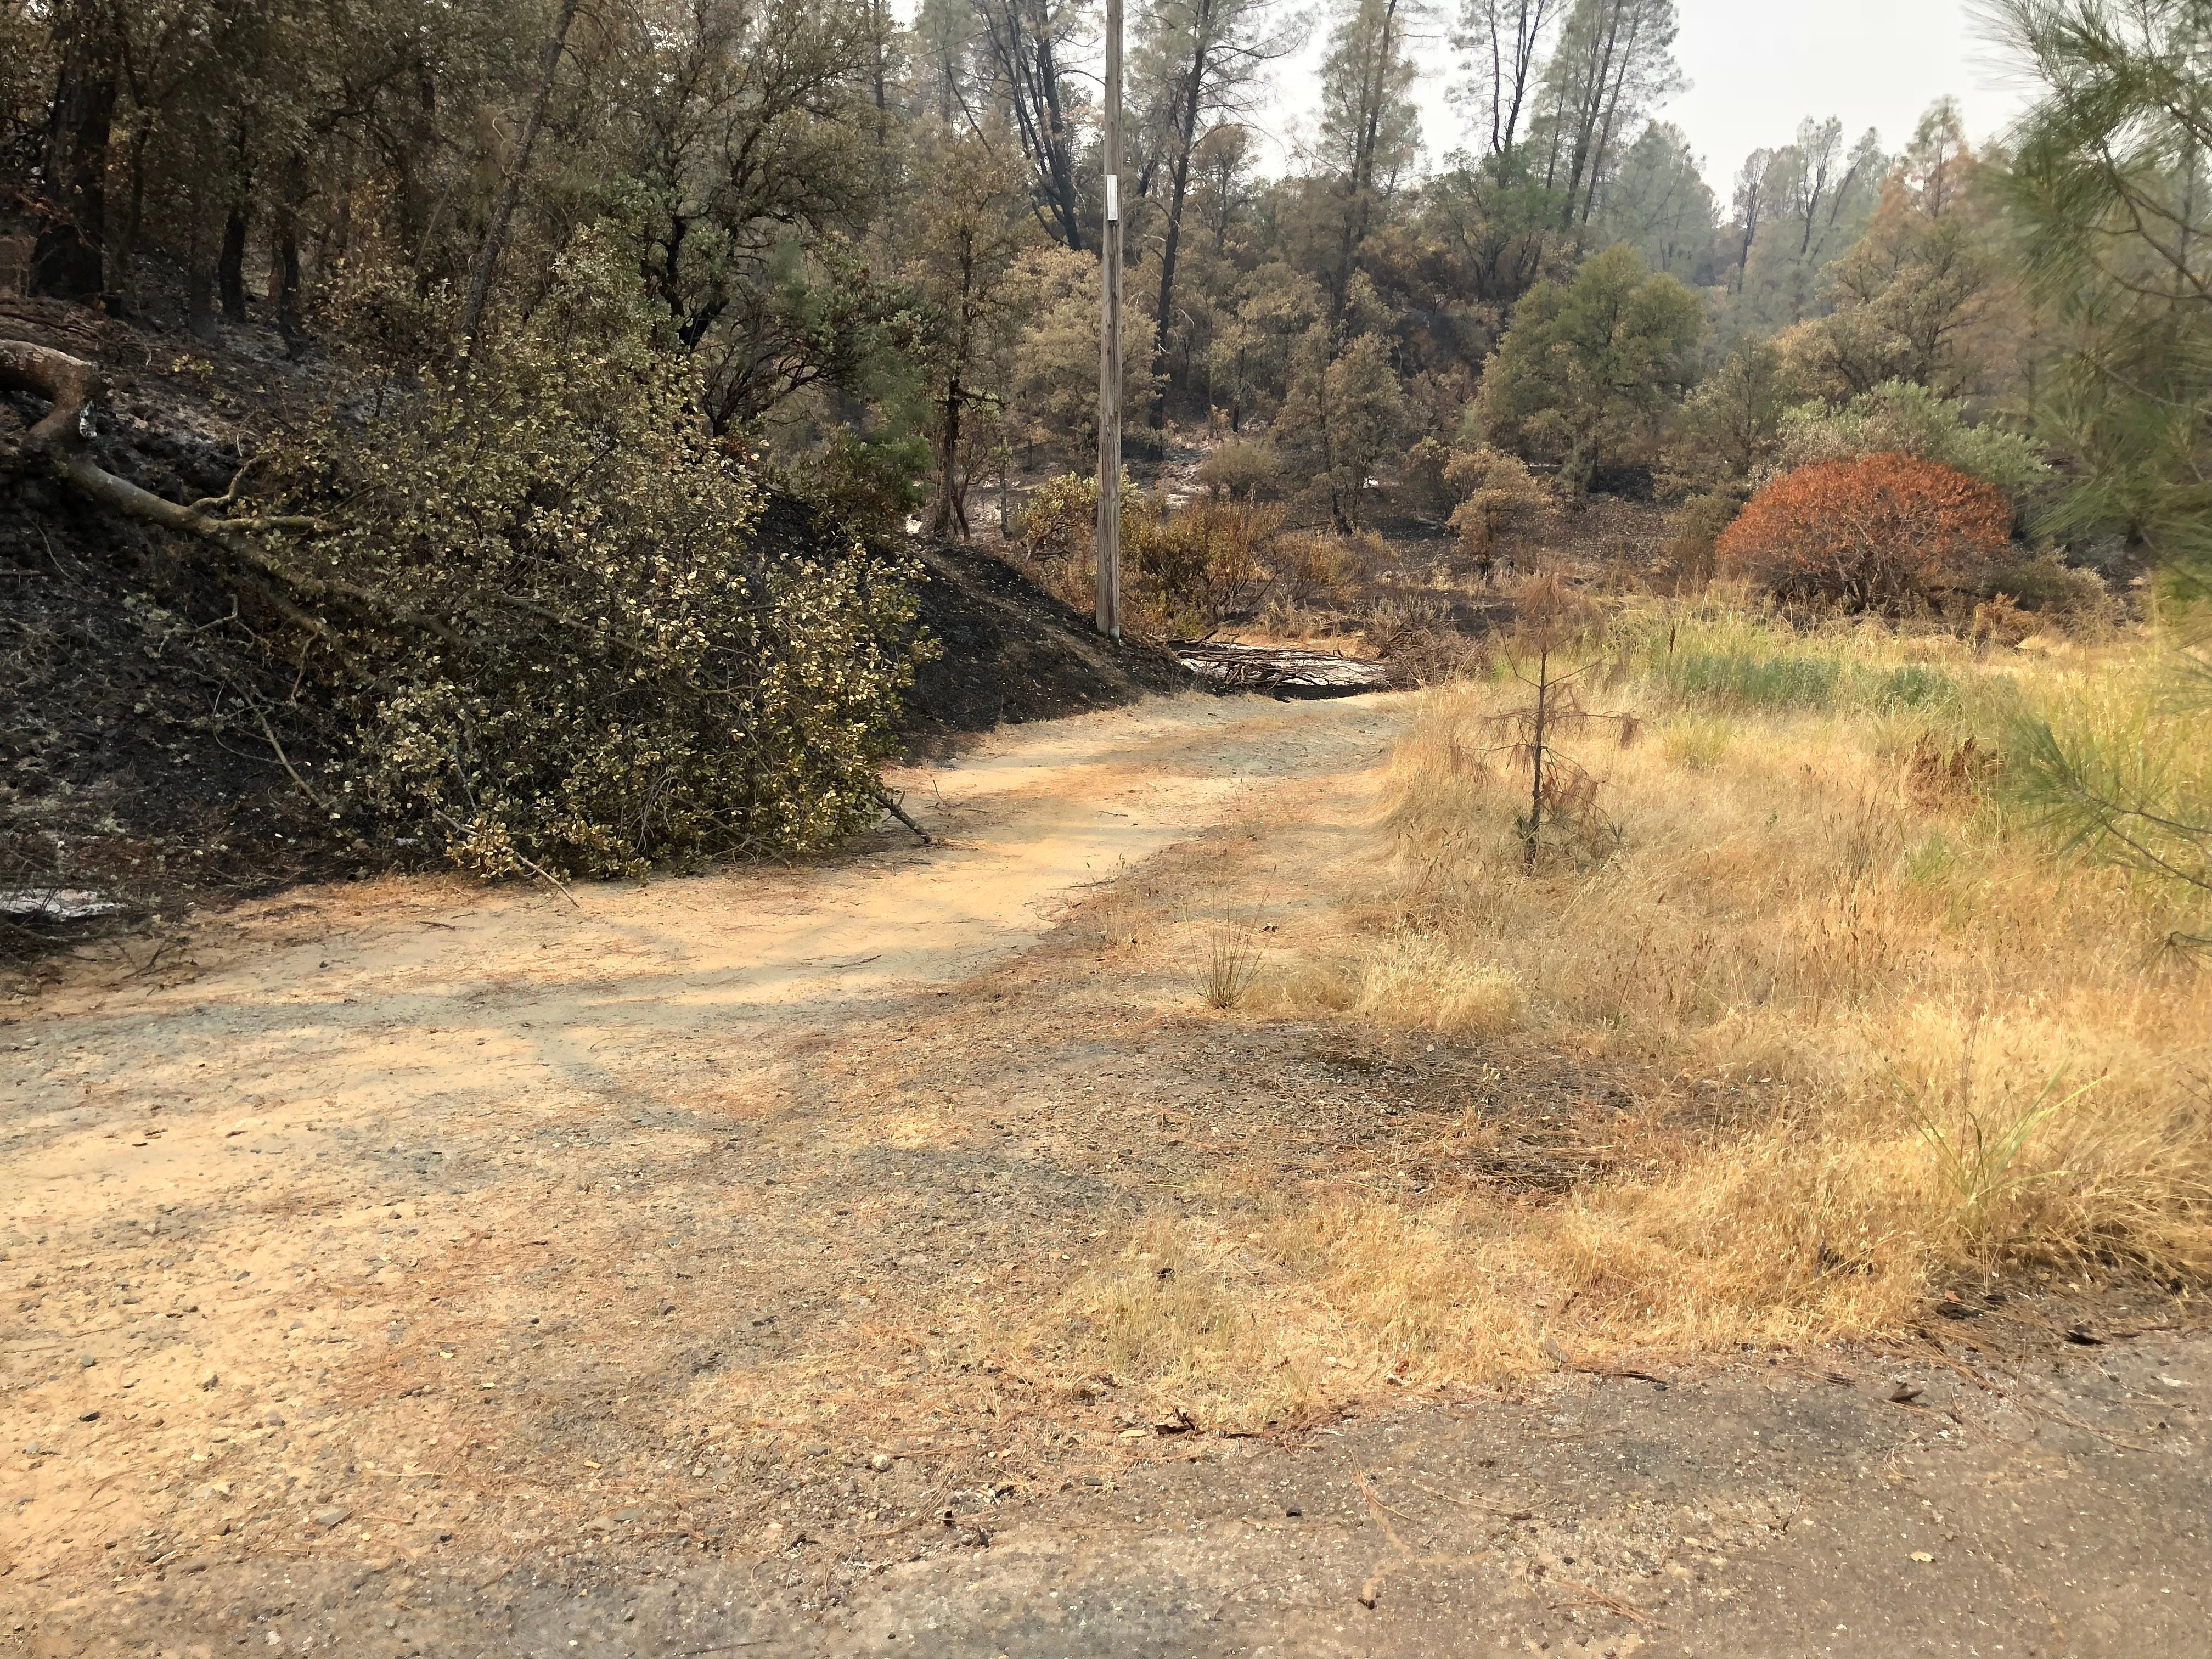 Carr Fire damage, including fallen trees and burned-up brush, is easy to find near the Middle Creek Connector Trailhead parking area just south of Highway 299. This trail is inaccessible to the public.